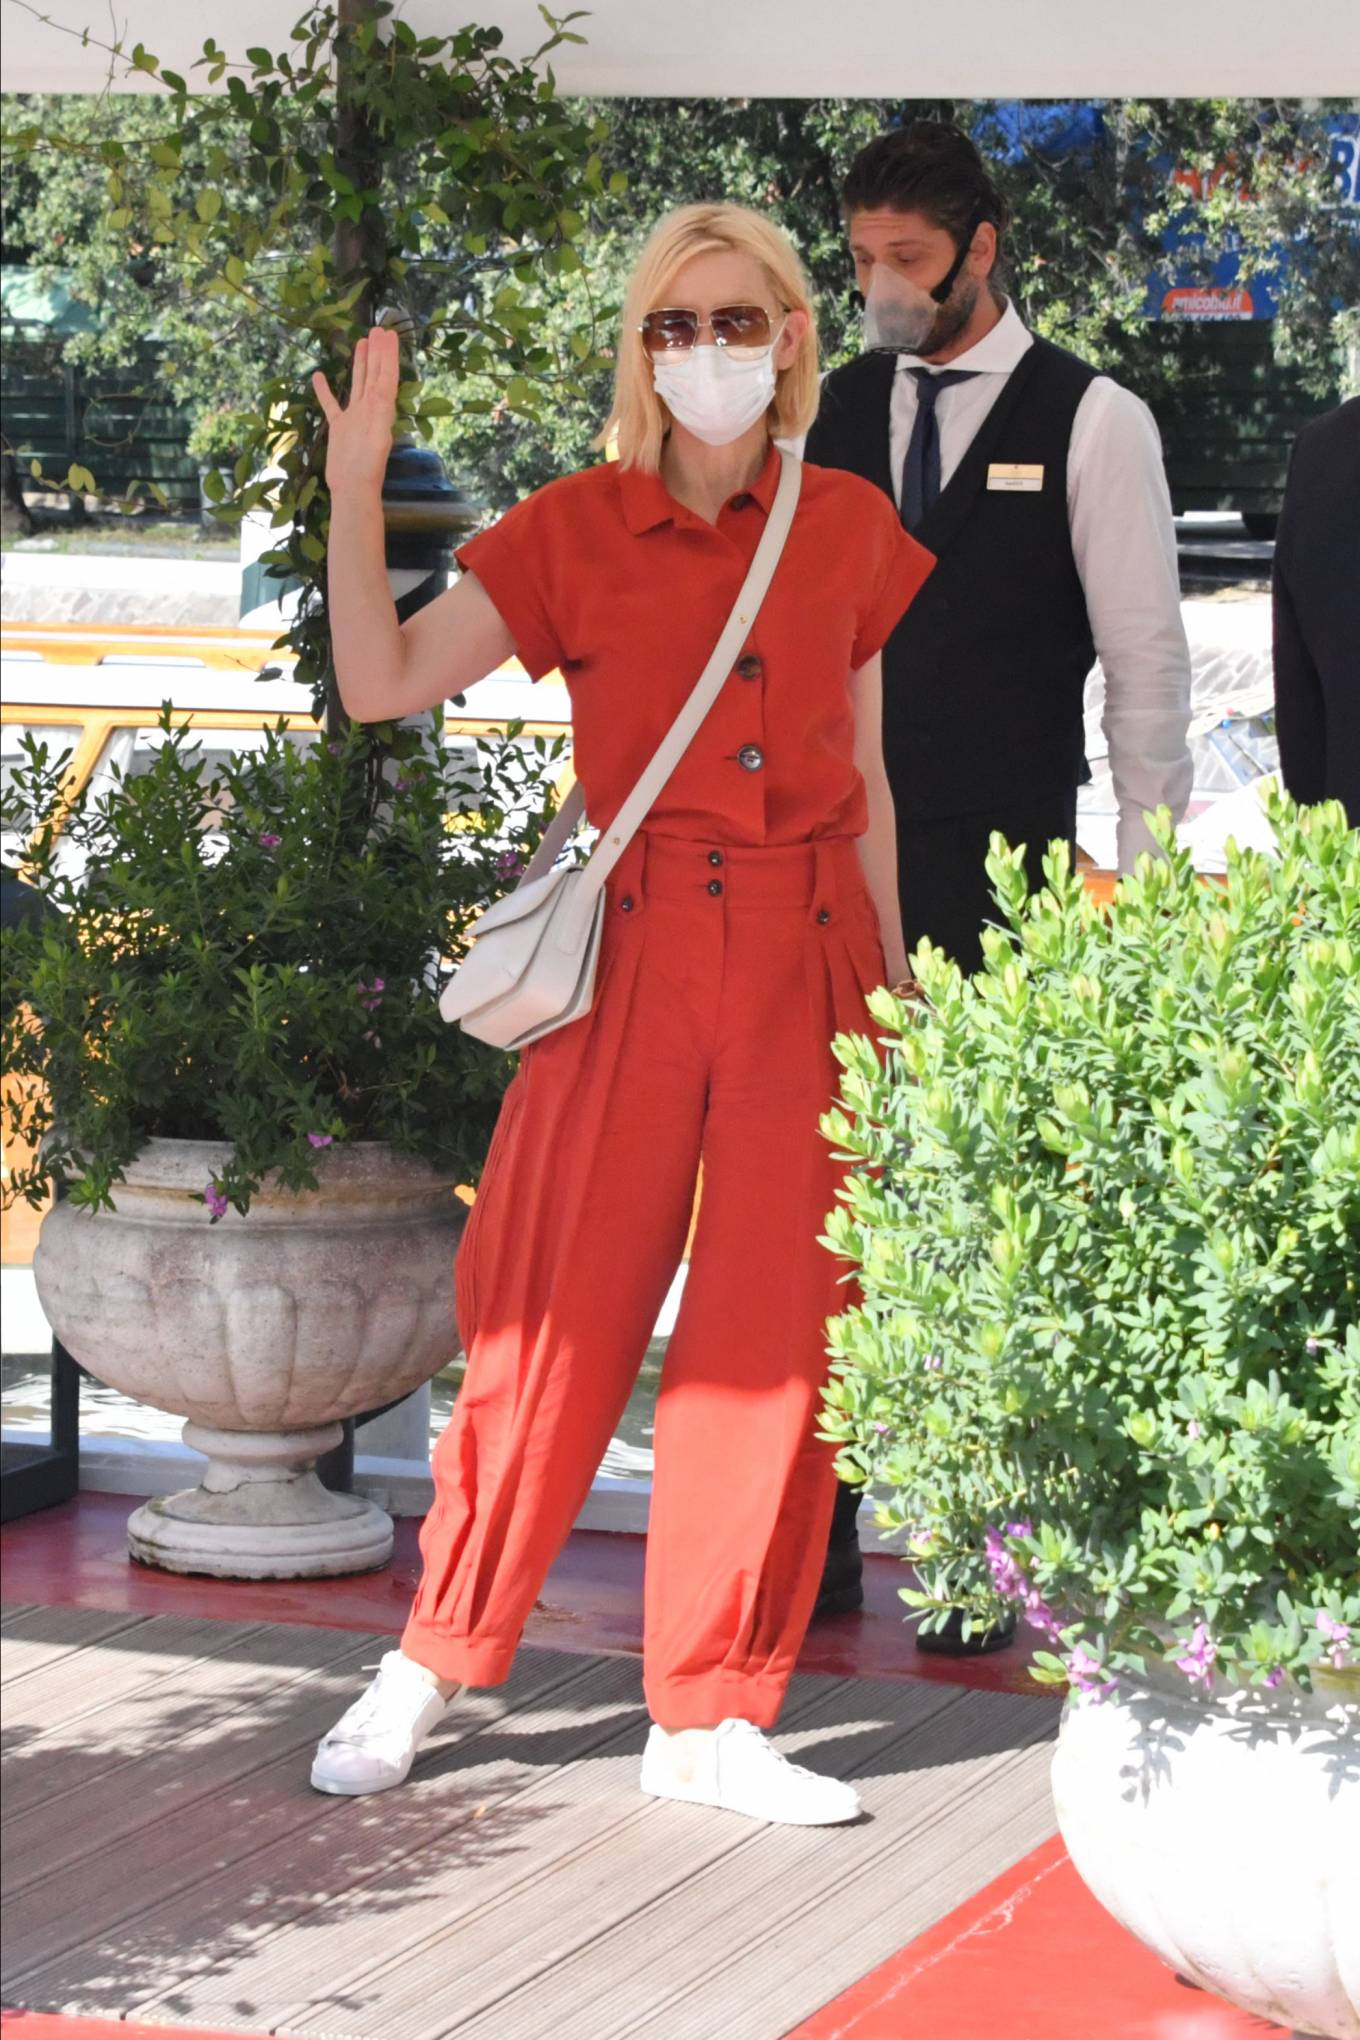 Cate Blanchett - In red at Excelsior hotel during 77th Venice Film Festival